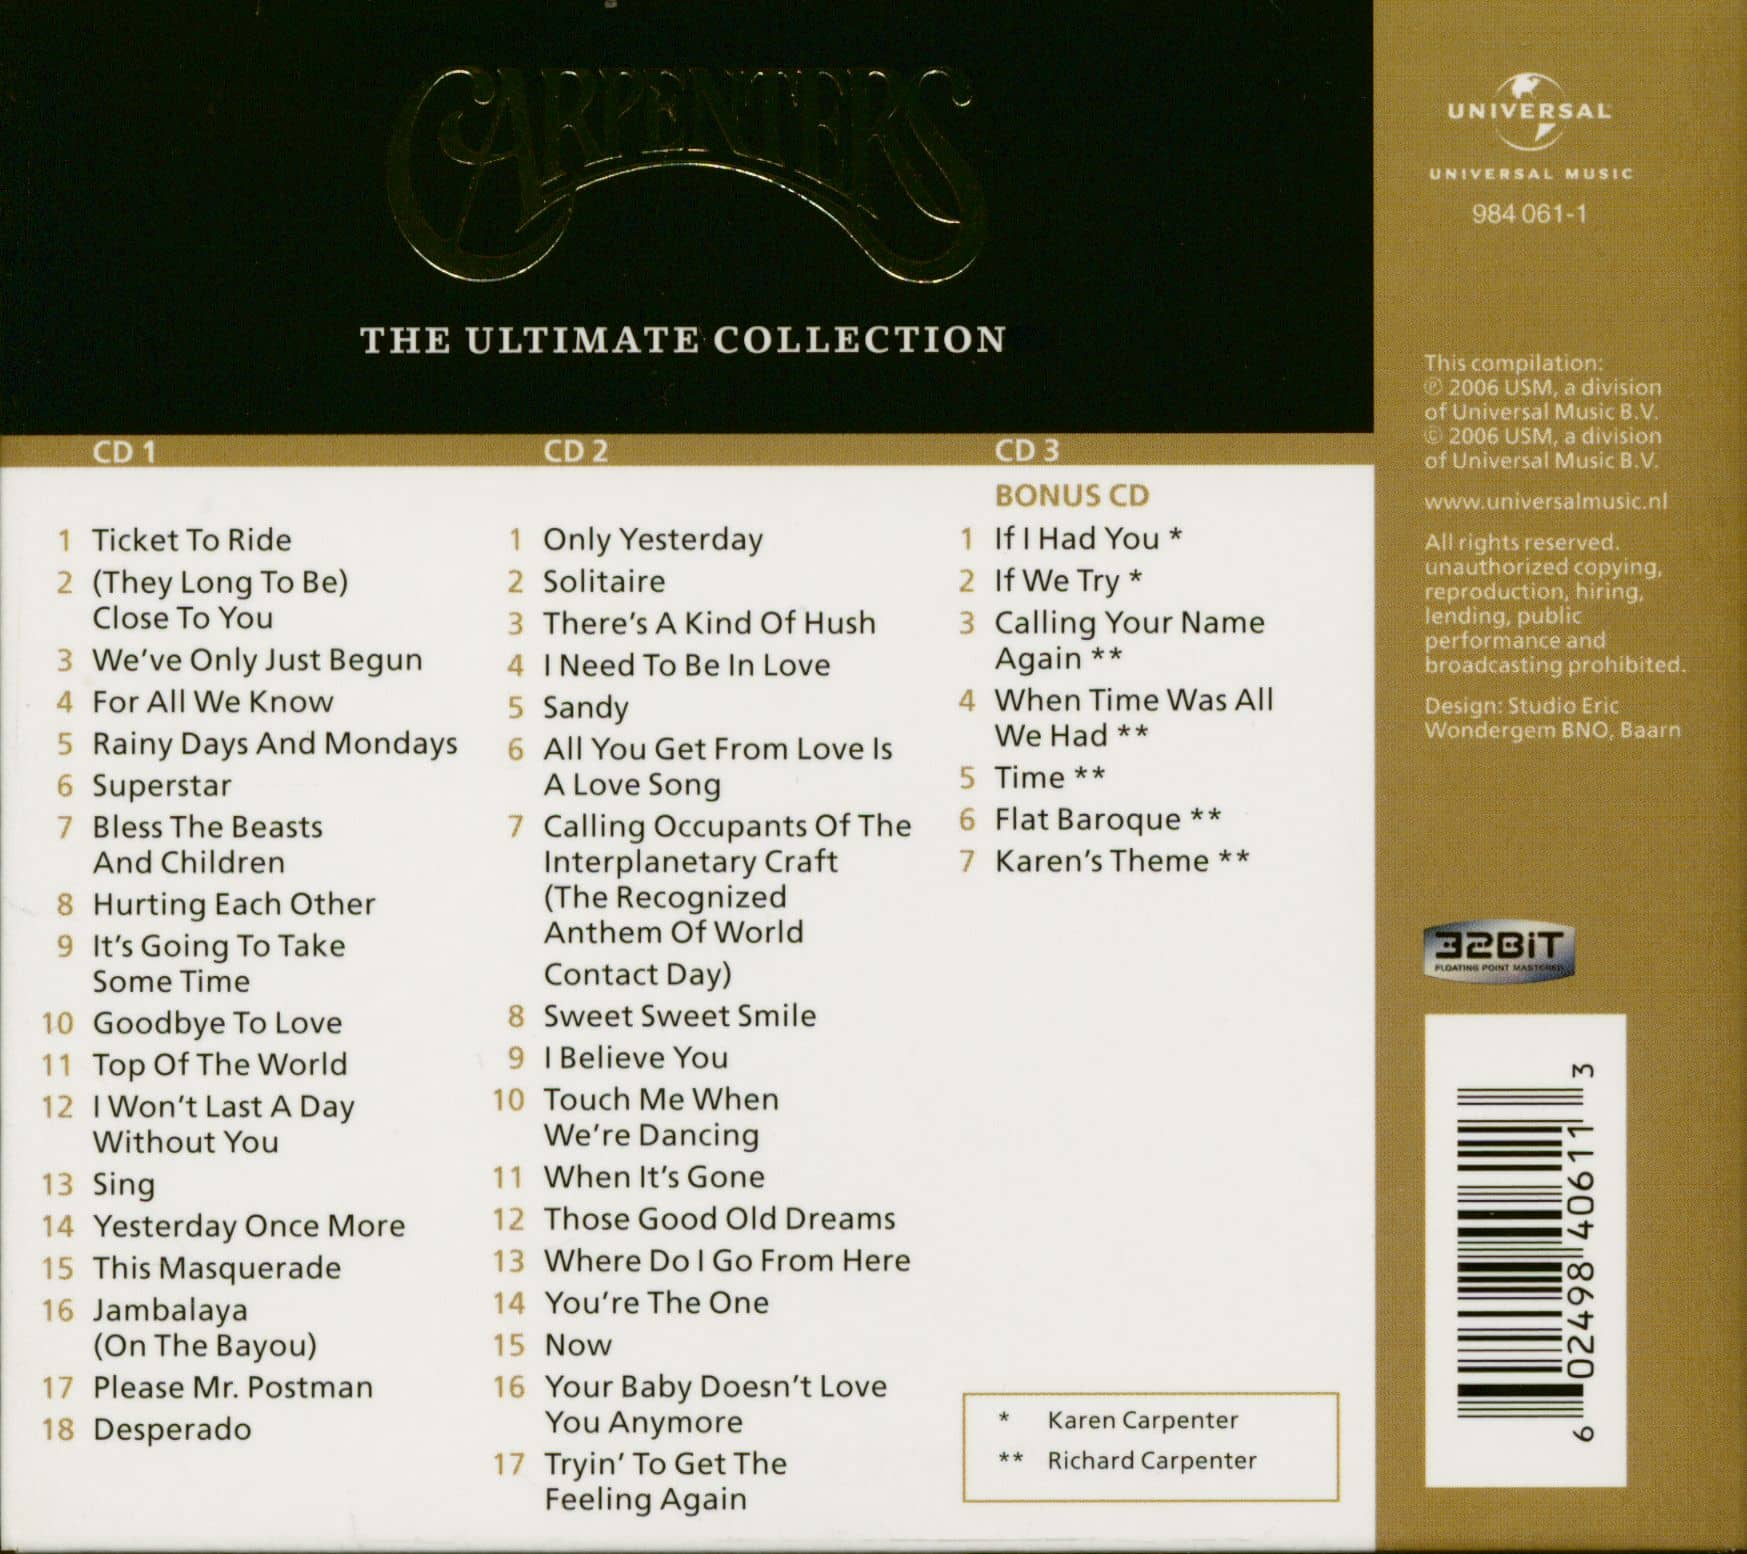 Carpenters Ultimate Collection: The Carpenters CD: The Ultimate Collection (3-CD Digipac